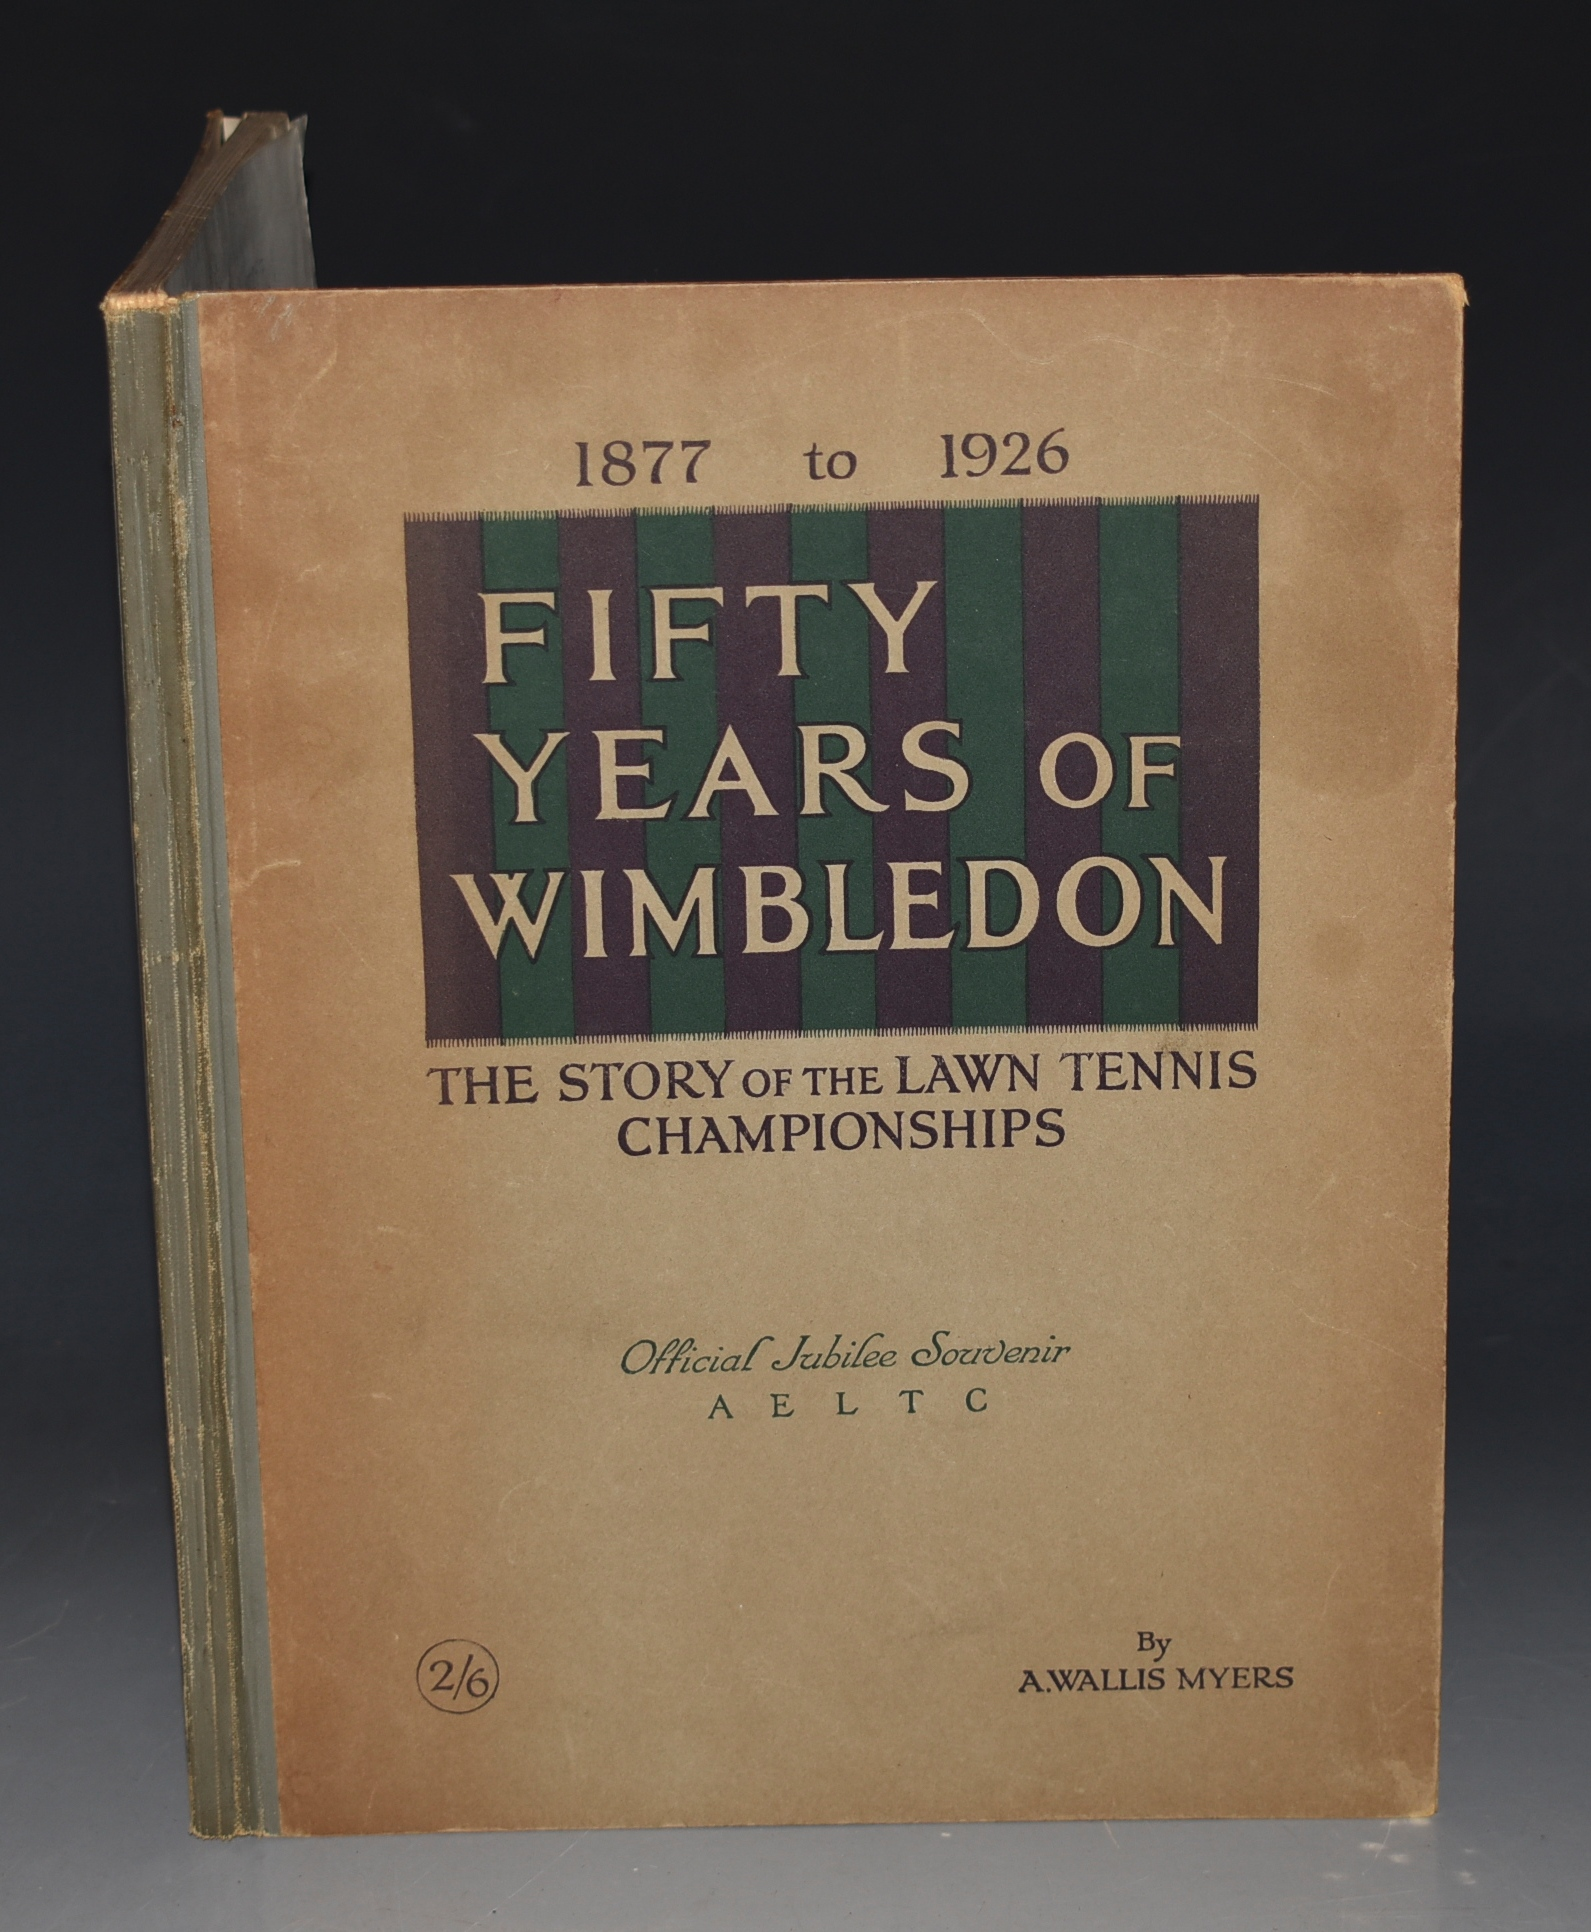 Image for Fifty Years of Wimbledon. The Story of the Lawn Tennis Championships. With Eighty-Five Illustrations. 1877 to 1926. Official Jubilee Souvenir.